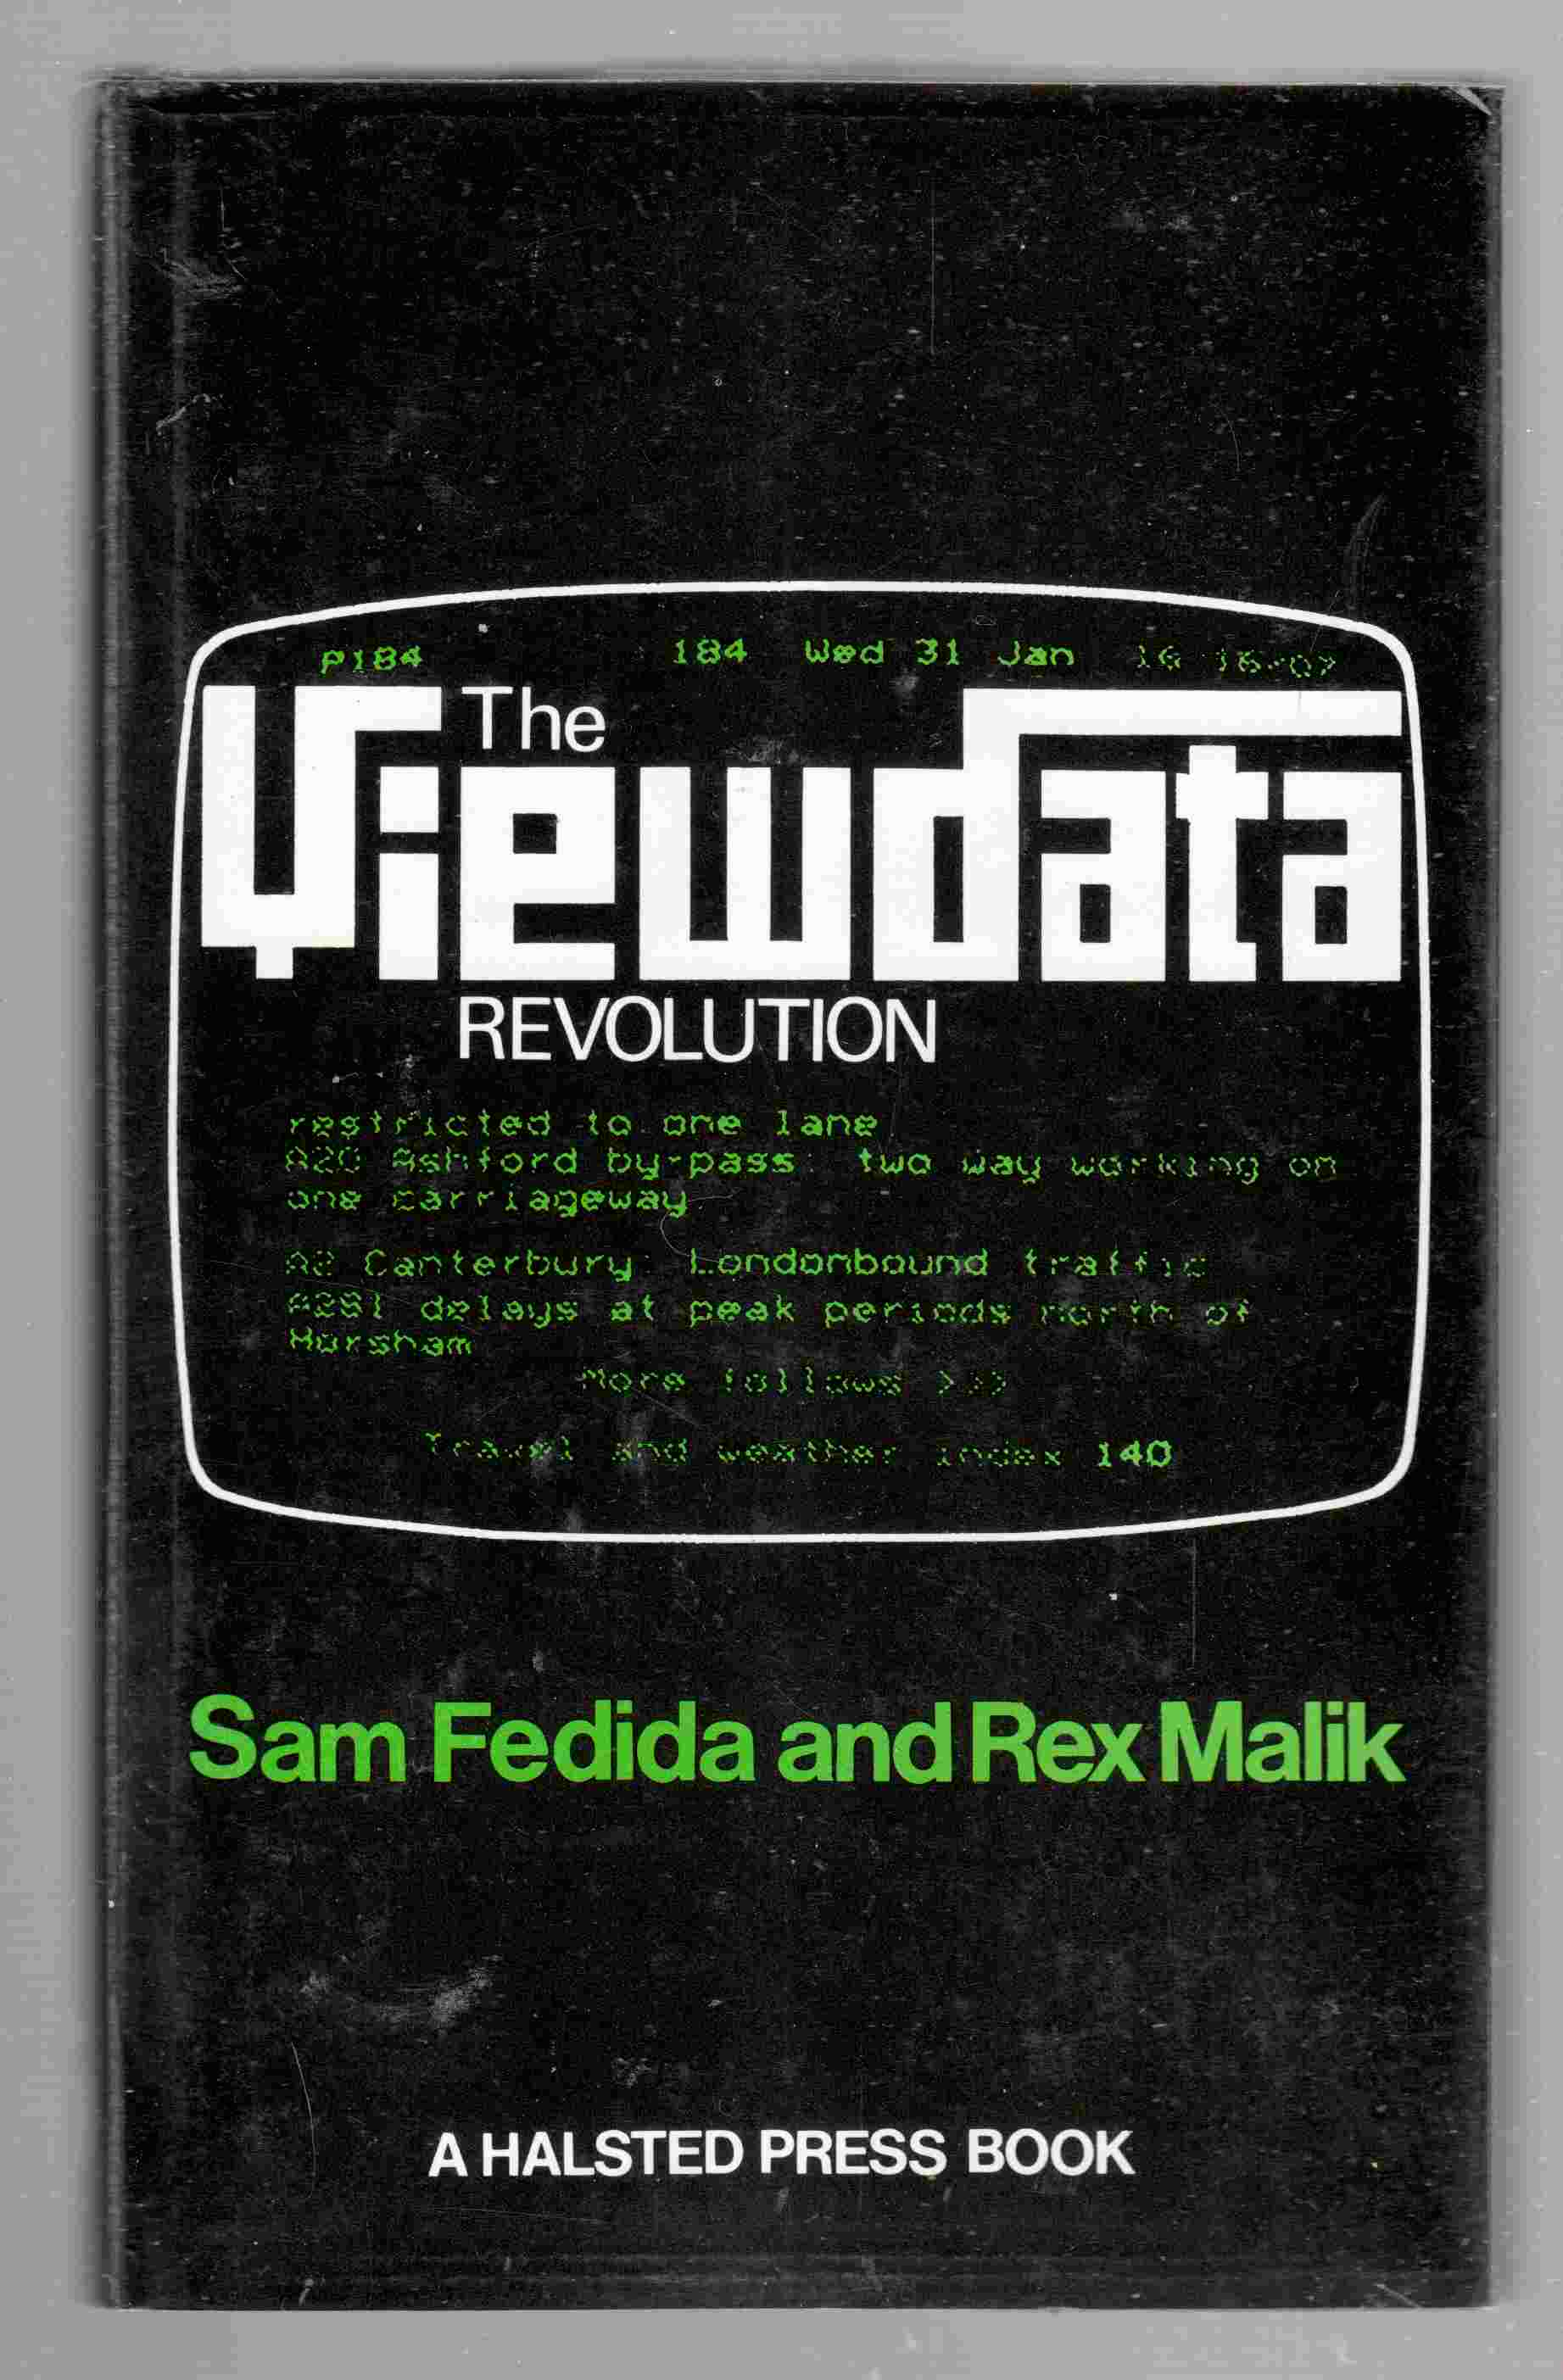 Image for The Viewdata Revolution